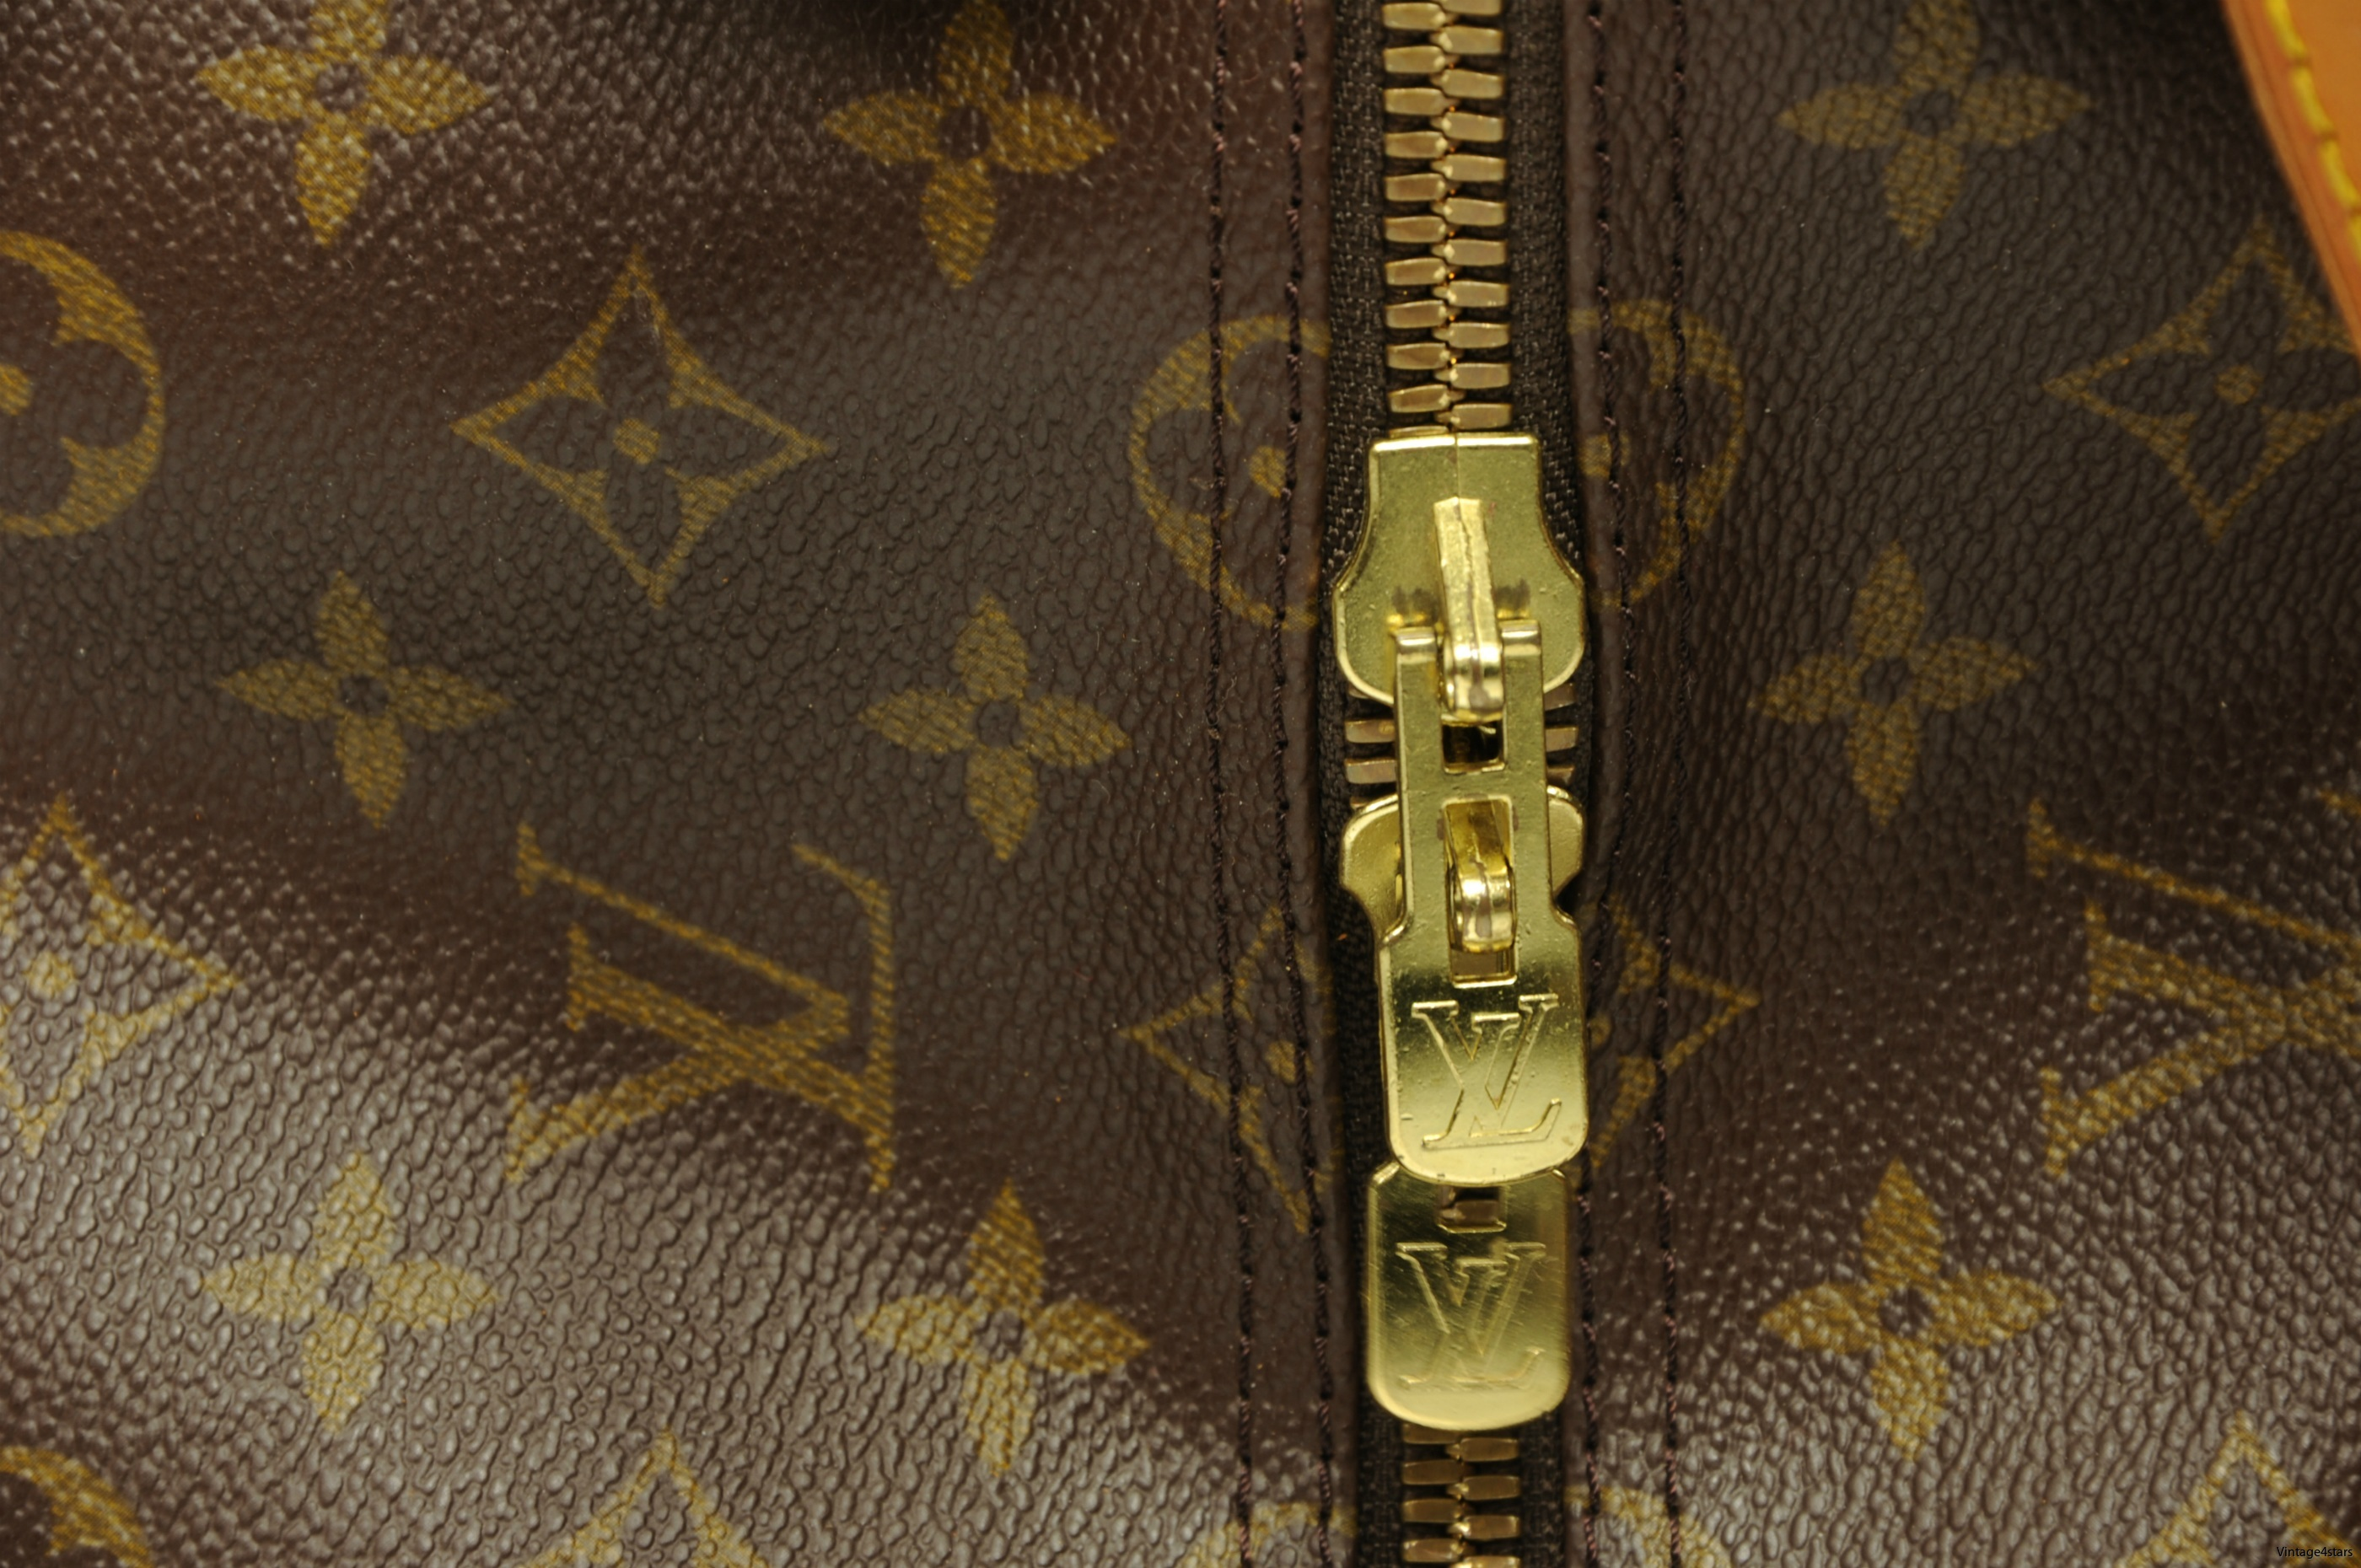 Louis Vuitton Keepall 55 Monogram 12